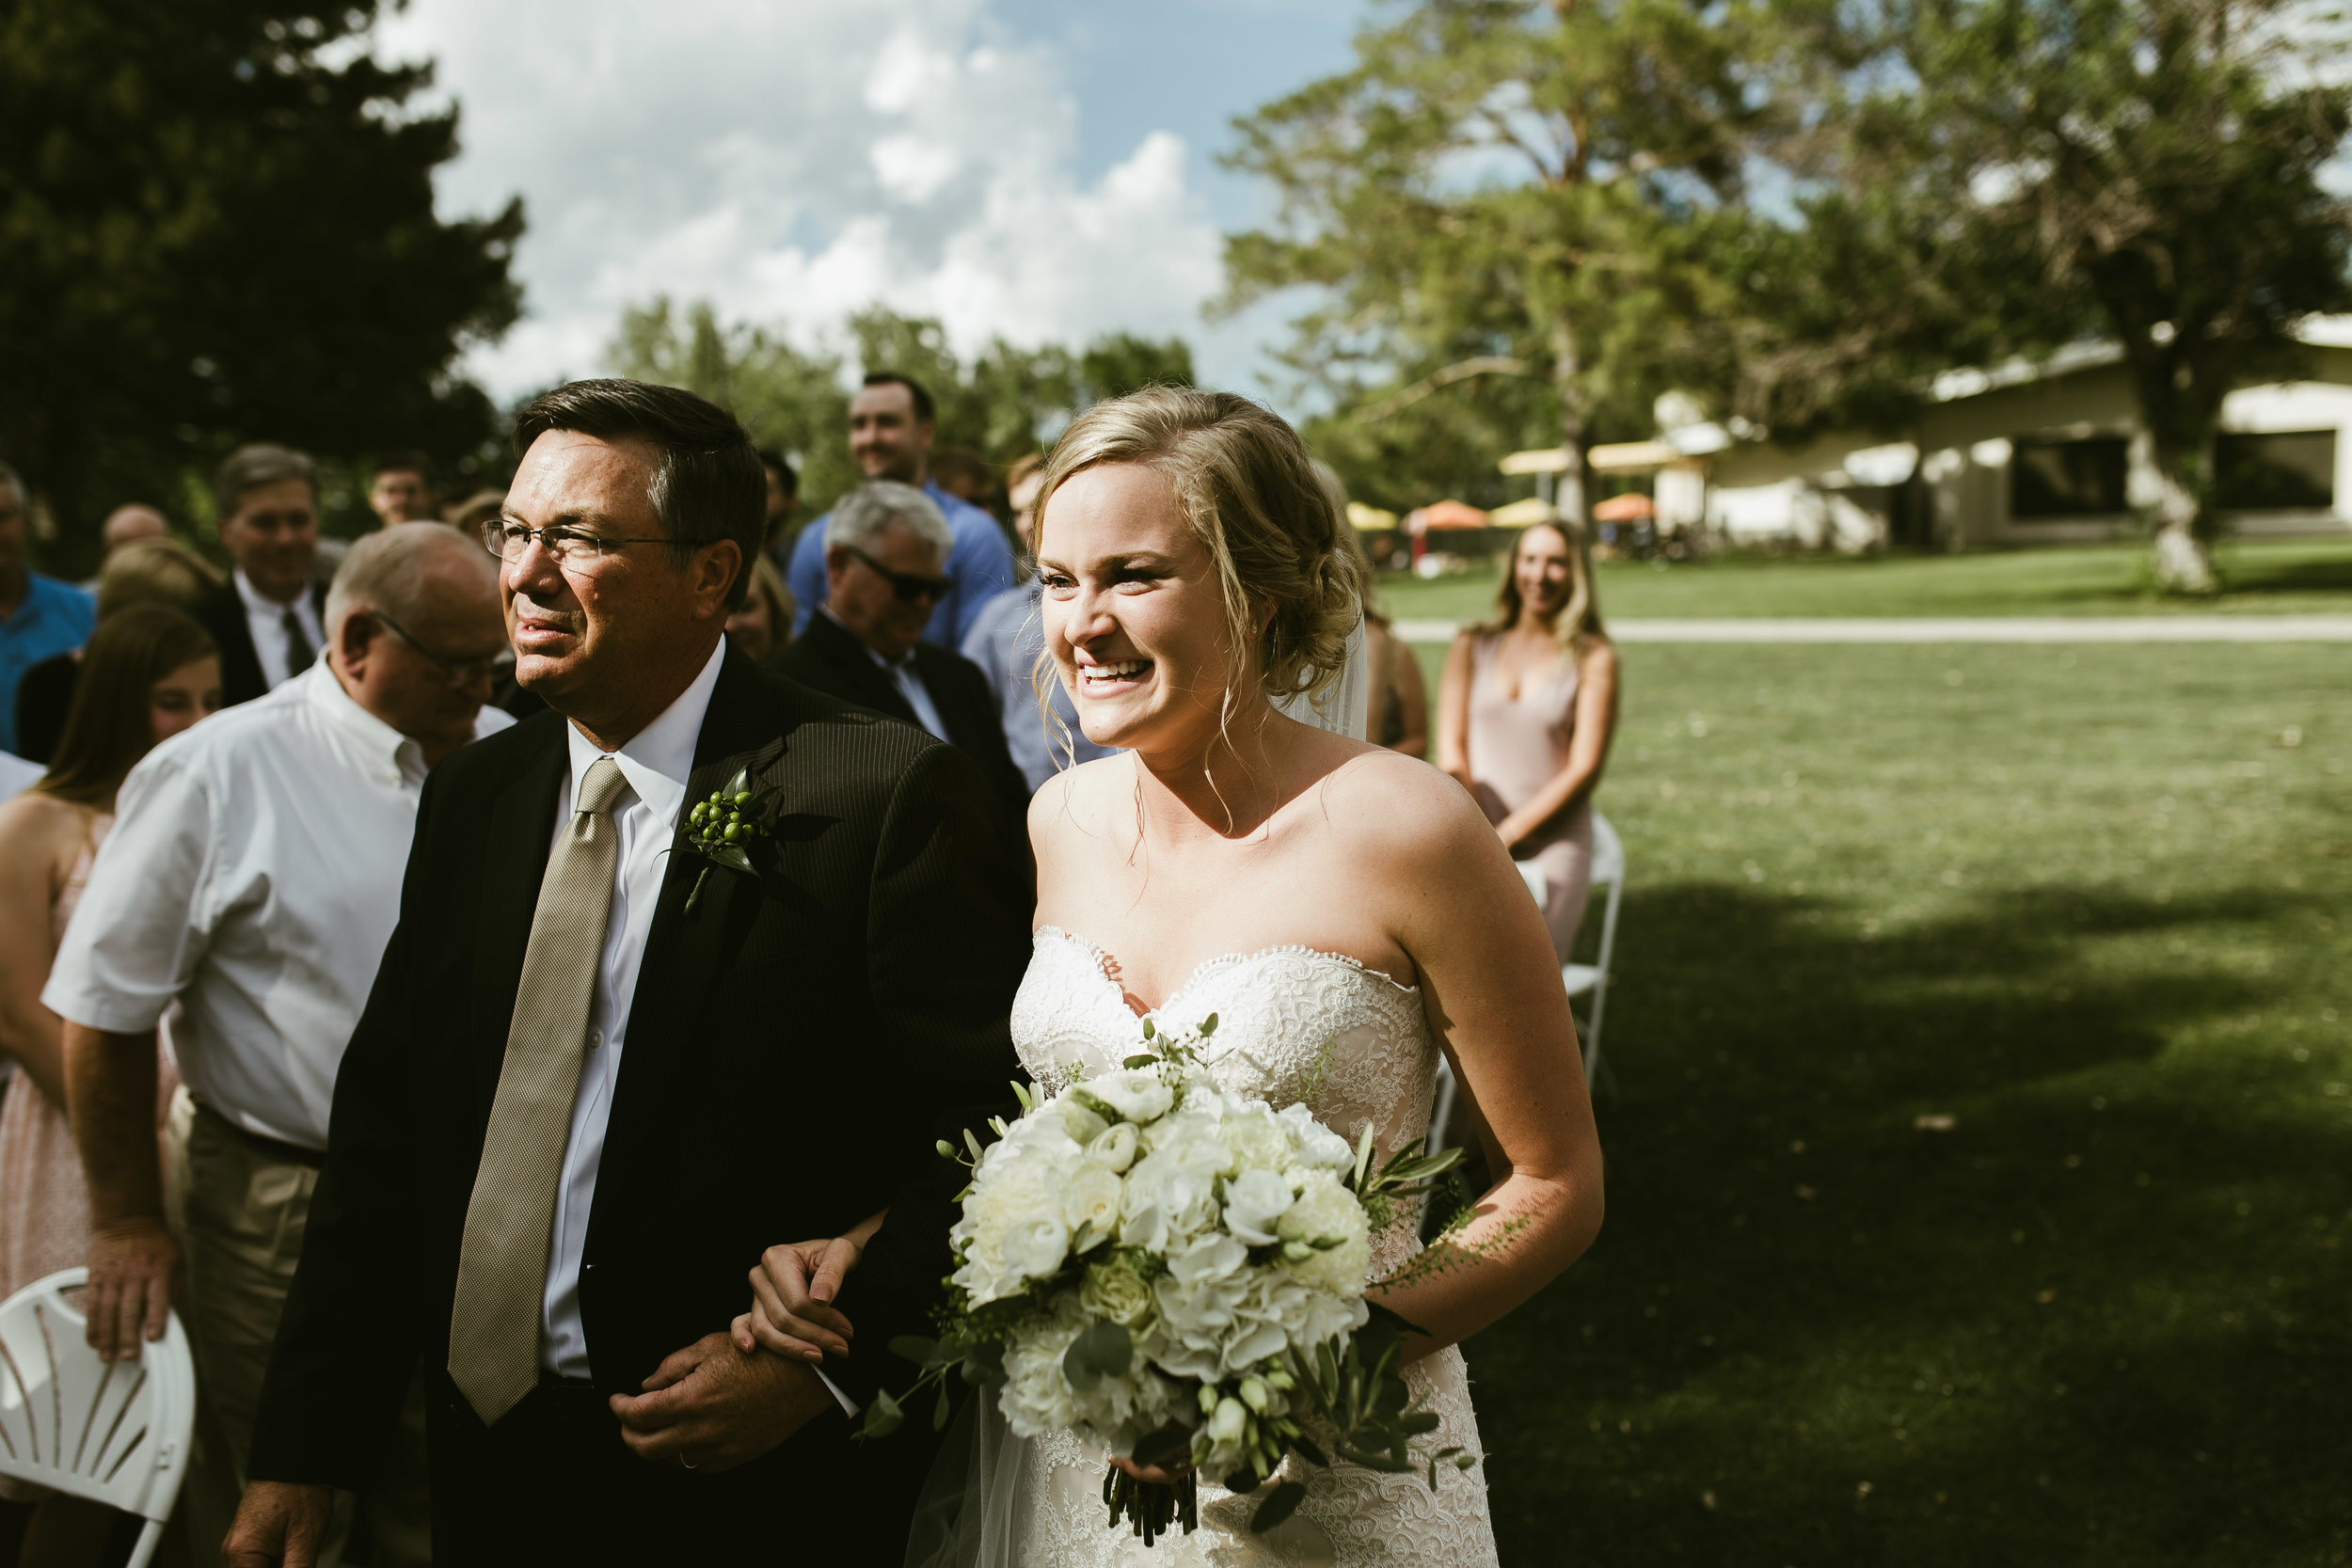 Megan&JaredMarried-564.jpg